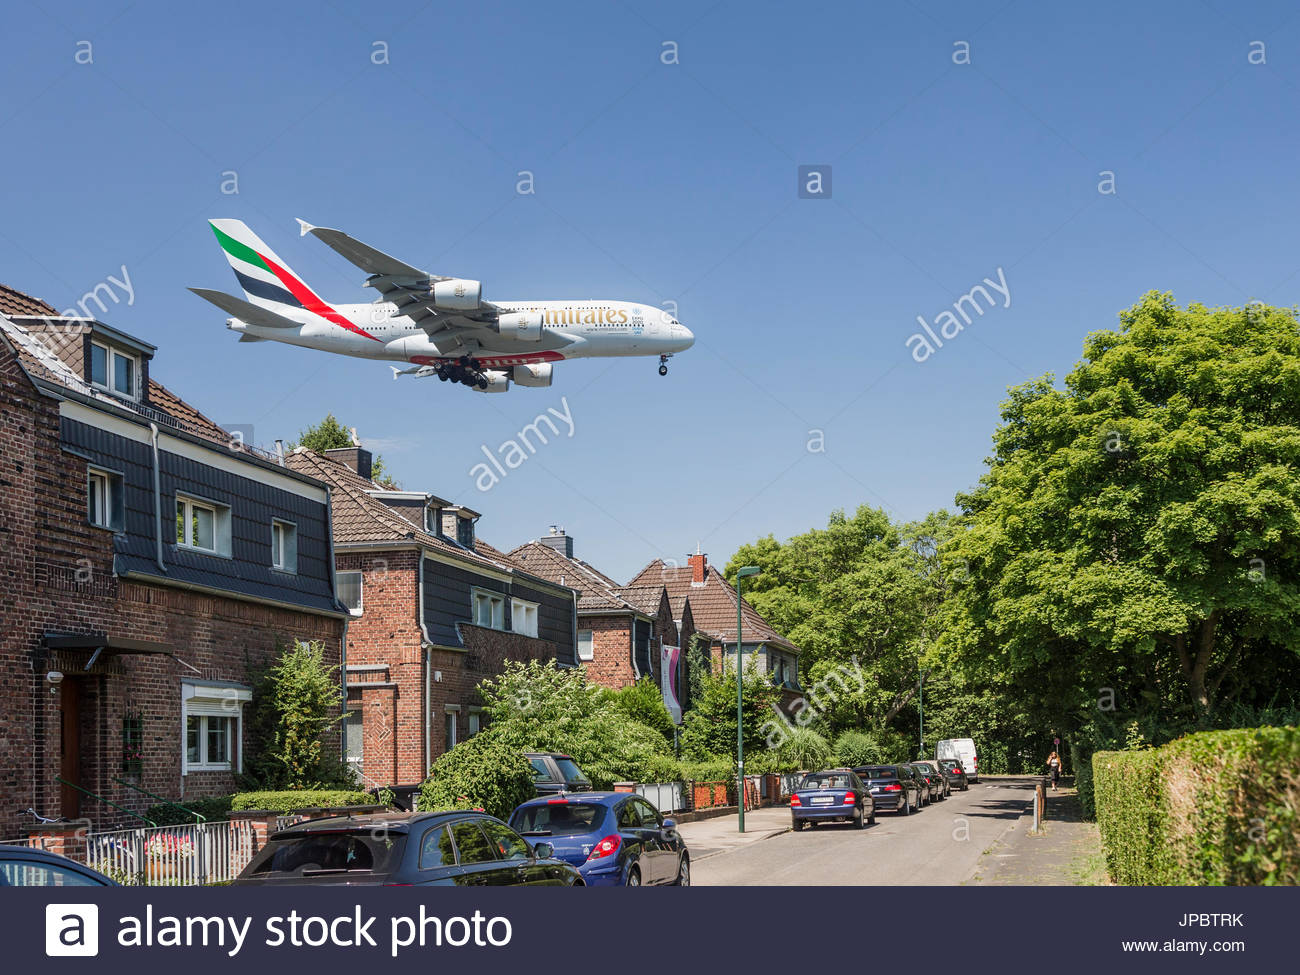 Airbus A380 over suburban residential area loud noise environment pollution housing buildings parking cars park - Stock Image